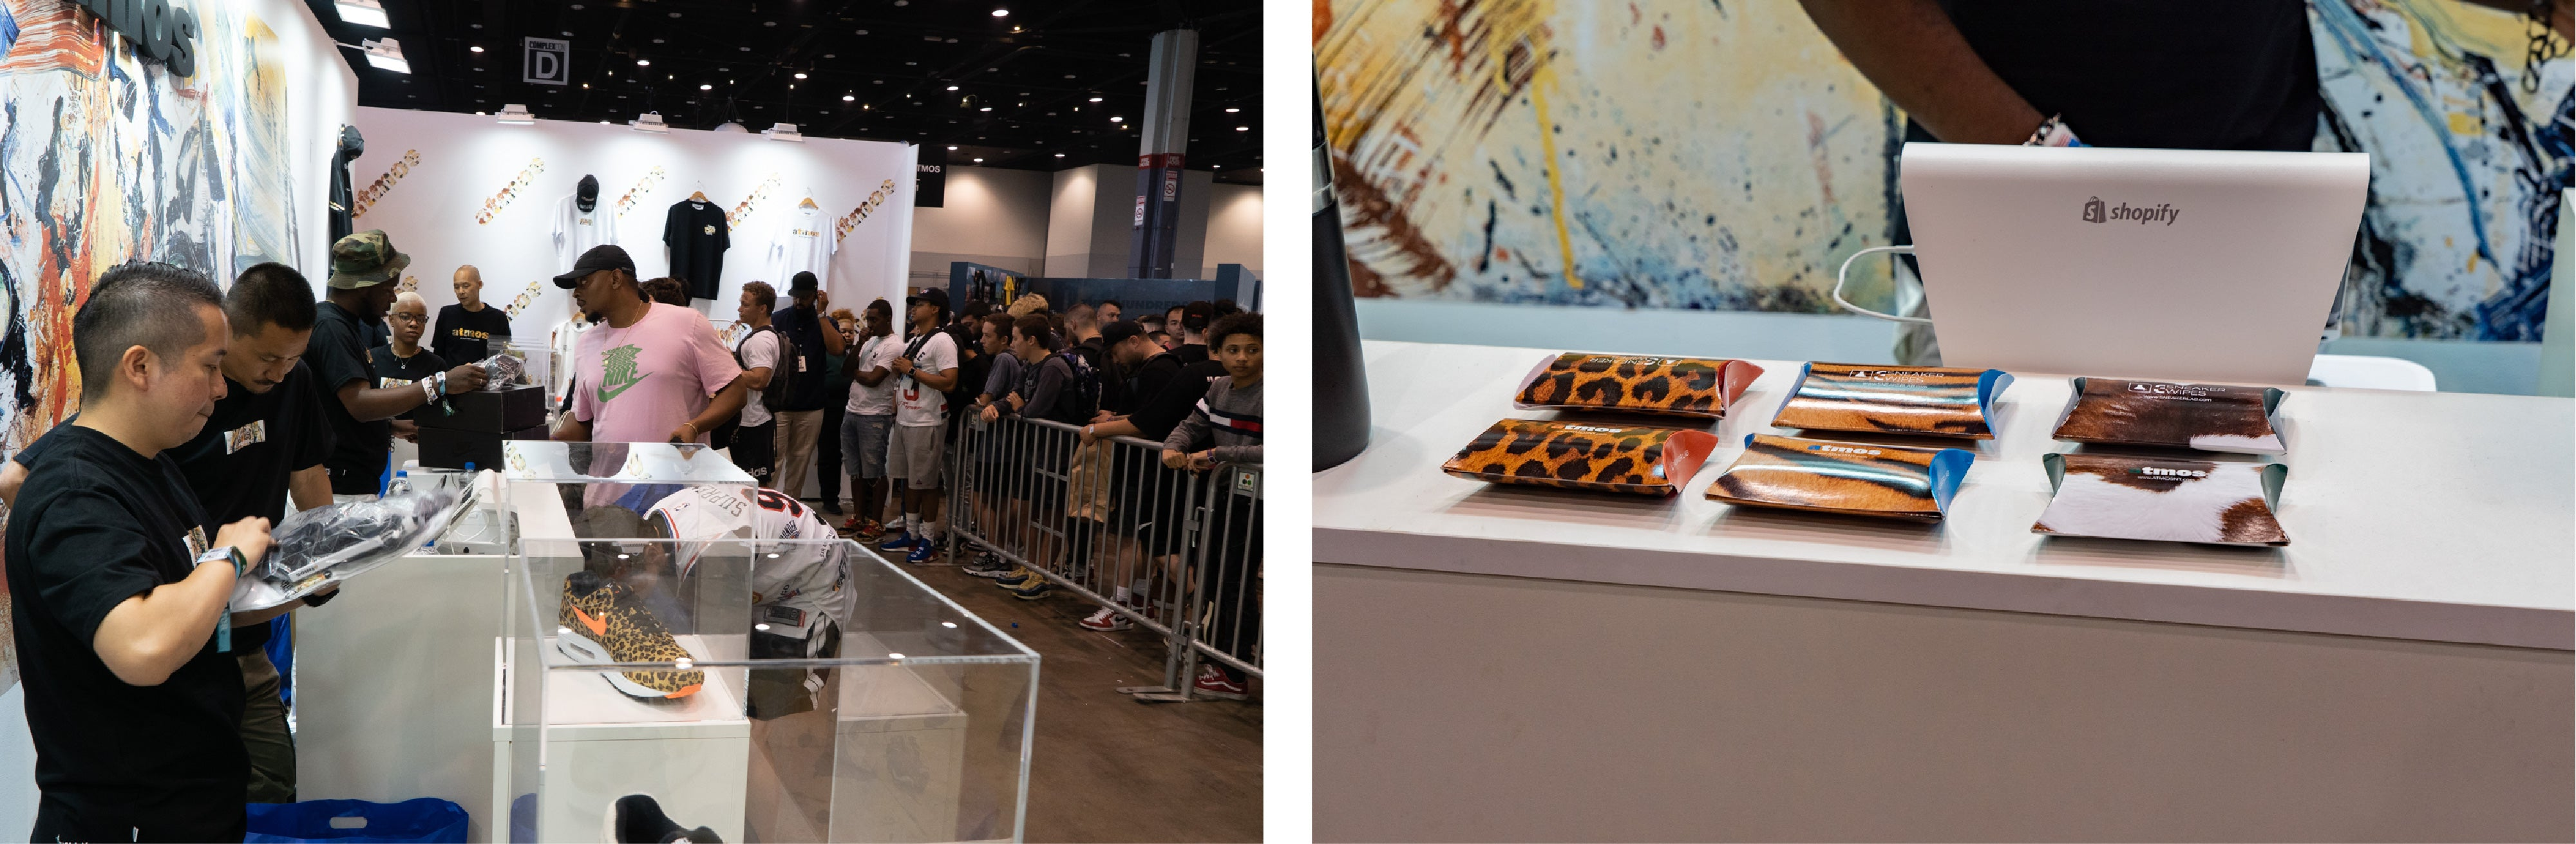 Sneaker LAB x Atmos Animal Pack 3 0 at ComplexCon Chicago